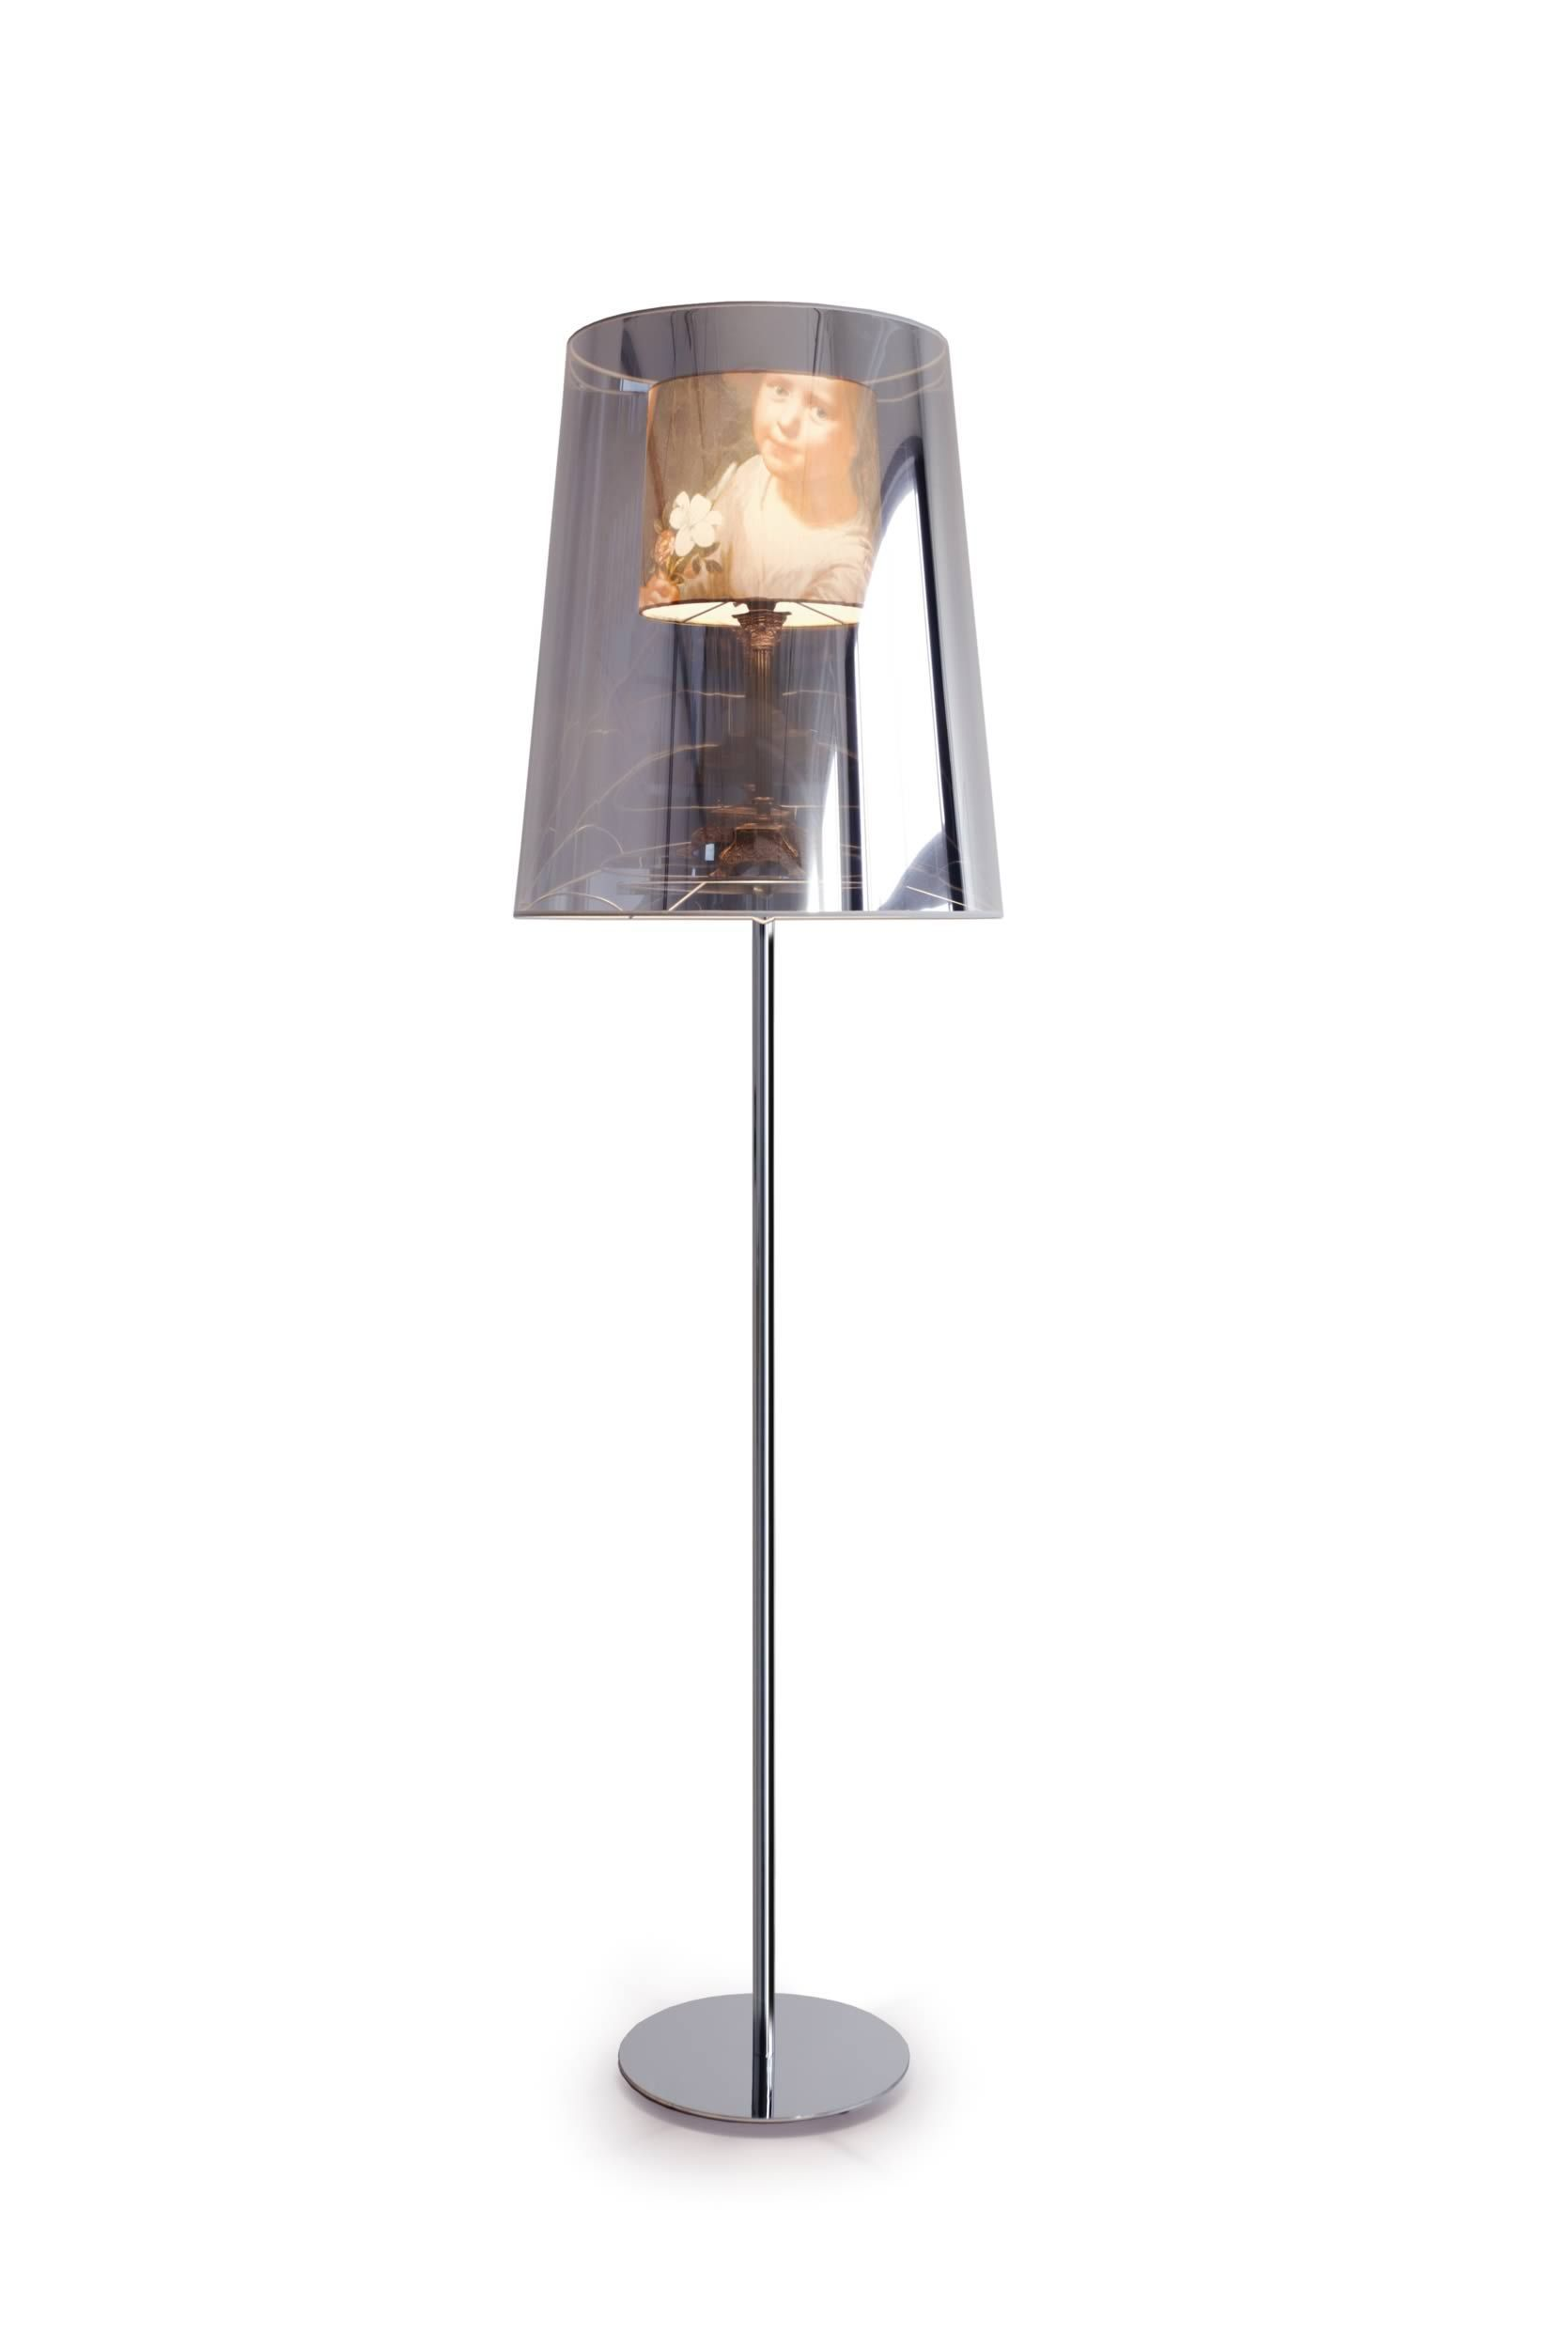 Light Shade Shade Floor Lamp By Jurgen Bey Moooi Oversized Floor Lamp Floor Lamp Shades Floor Lamp